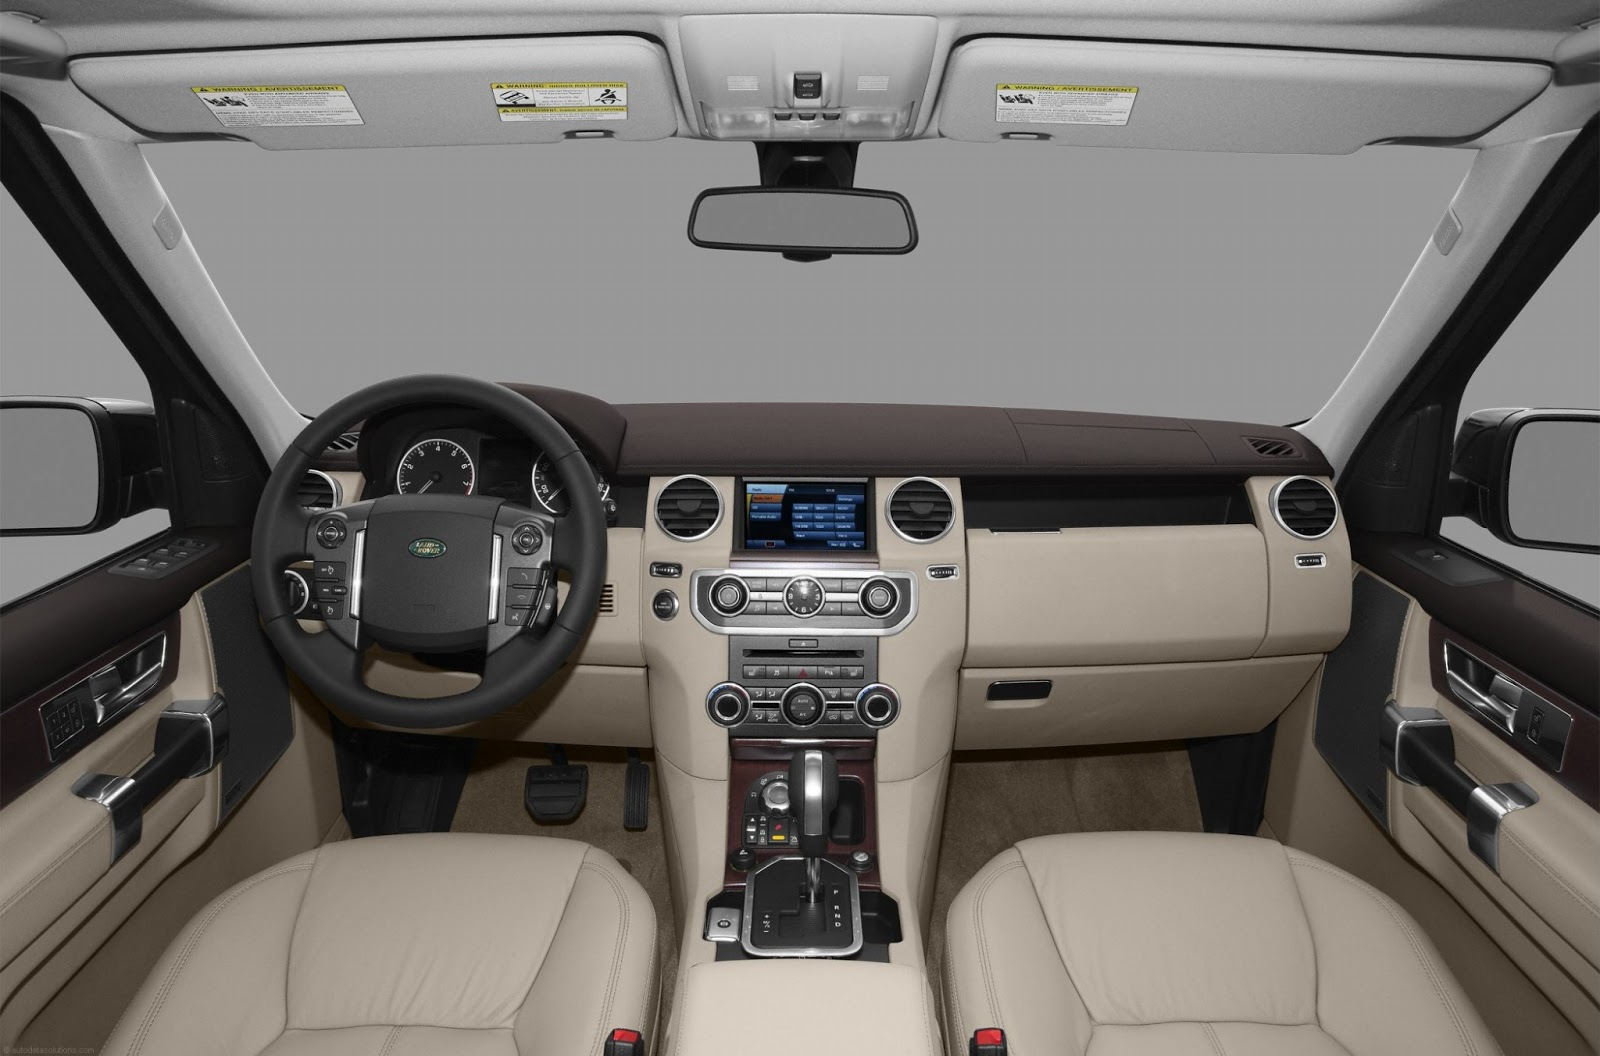 2010 land rover lr4 pictures specifications interiors and exteriors pictures hd wallpapers. Black Bedroom Furniture Sets. Home Design Ideas